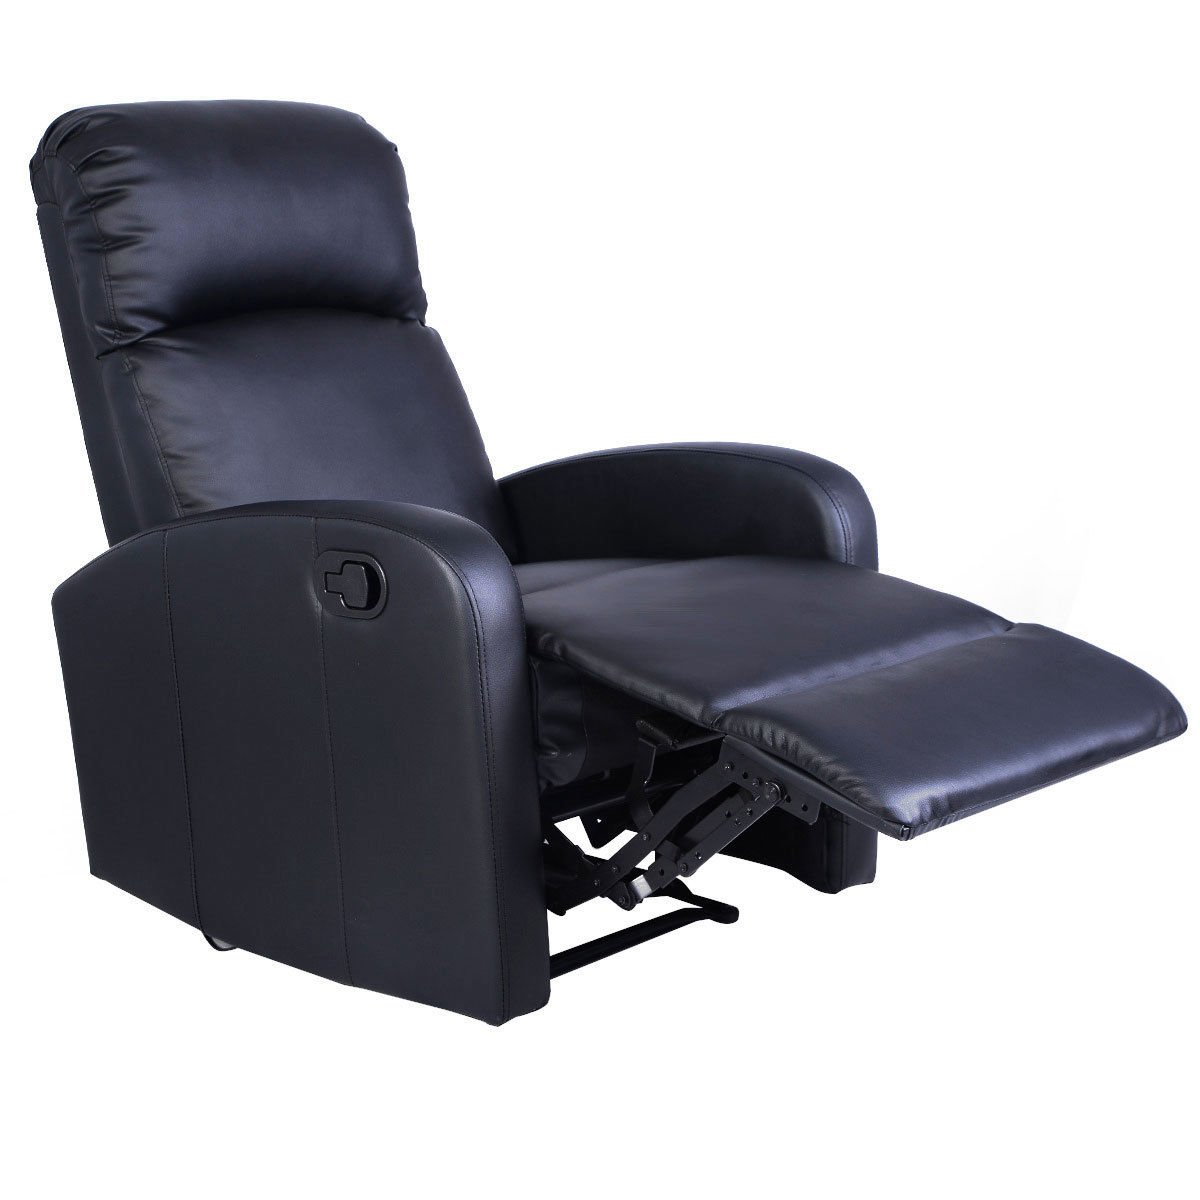 Giantex Recliner Chair Leather Black Lounger Sofa Seat